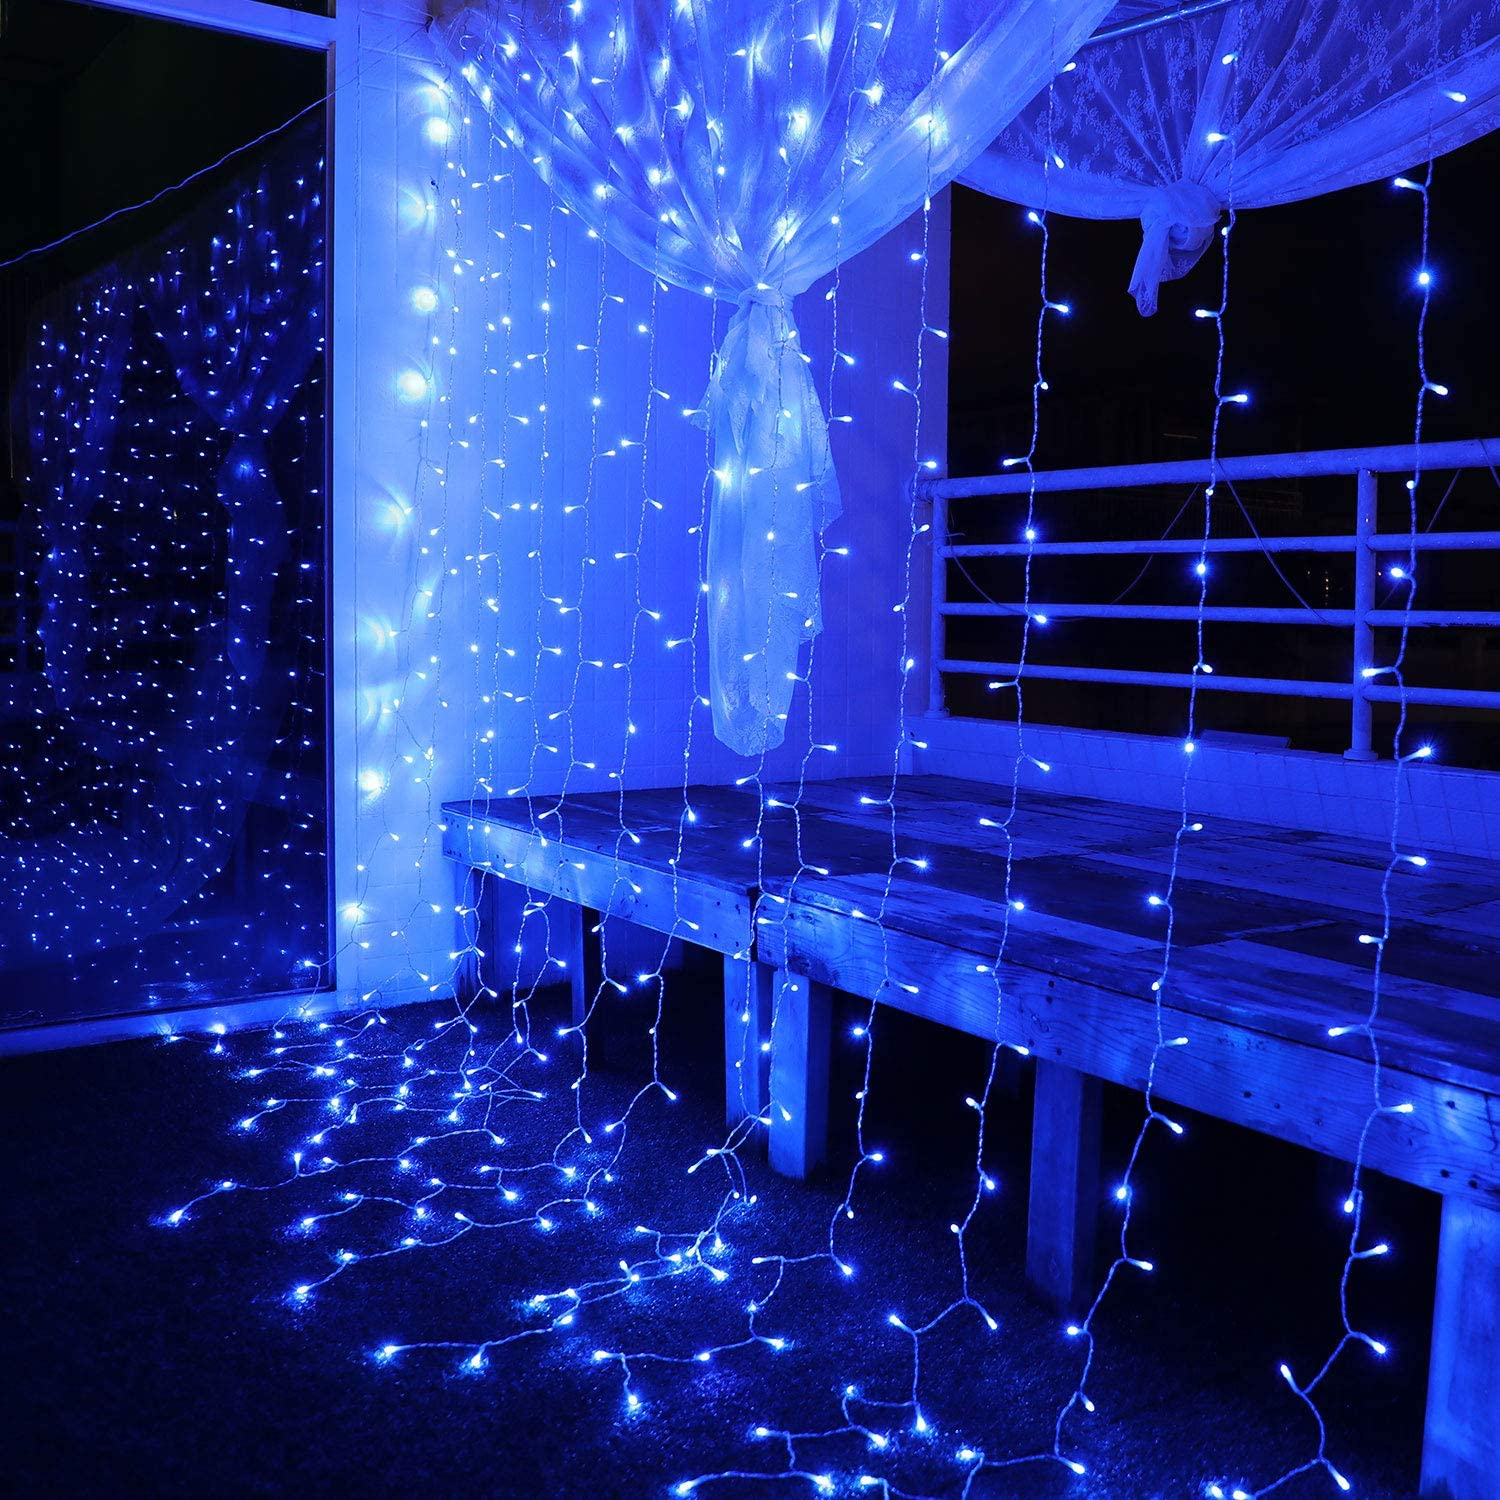 Blue Wedding Decorations Fairy Lights 300 LED Window Curtain String Twinkle Light for Christmas Wedding Party Home Garden Bedroom Outdoor Indoor Wall Decoration